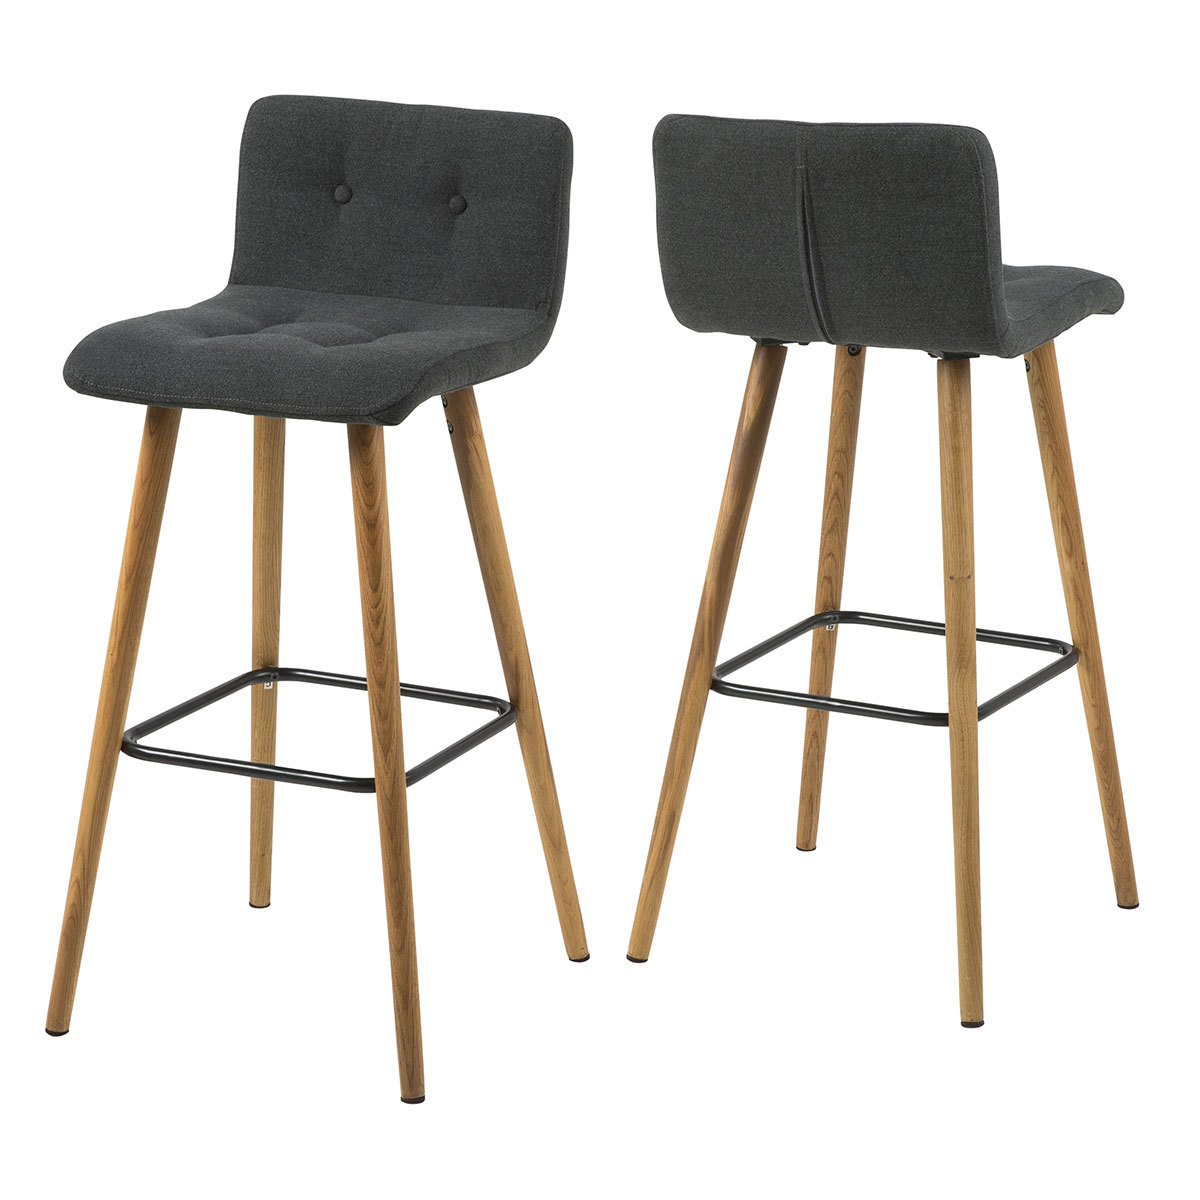 tabouret de bar tolix mobilier design d coration d 39 int rieur. Black Bedroom Furniture Sets. Home Design Ideas